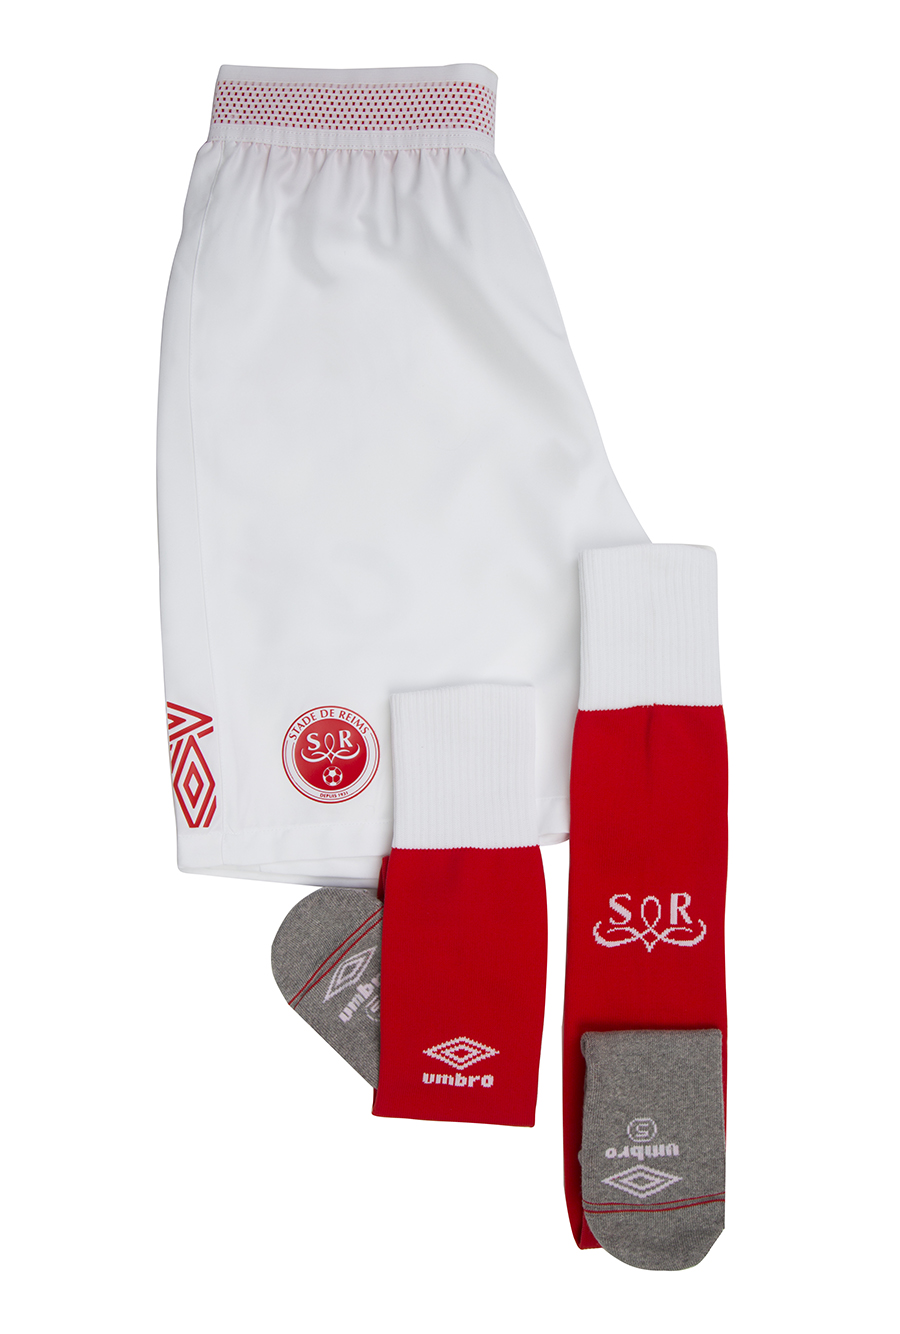 Umbro x Stade de Reims Saison 2019-1920 - Kit Home